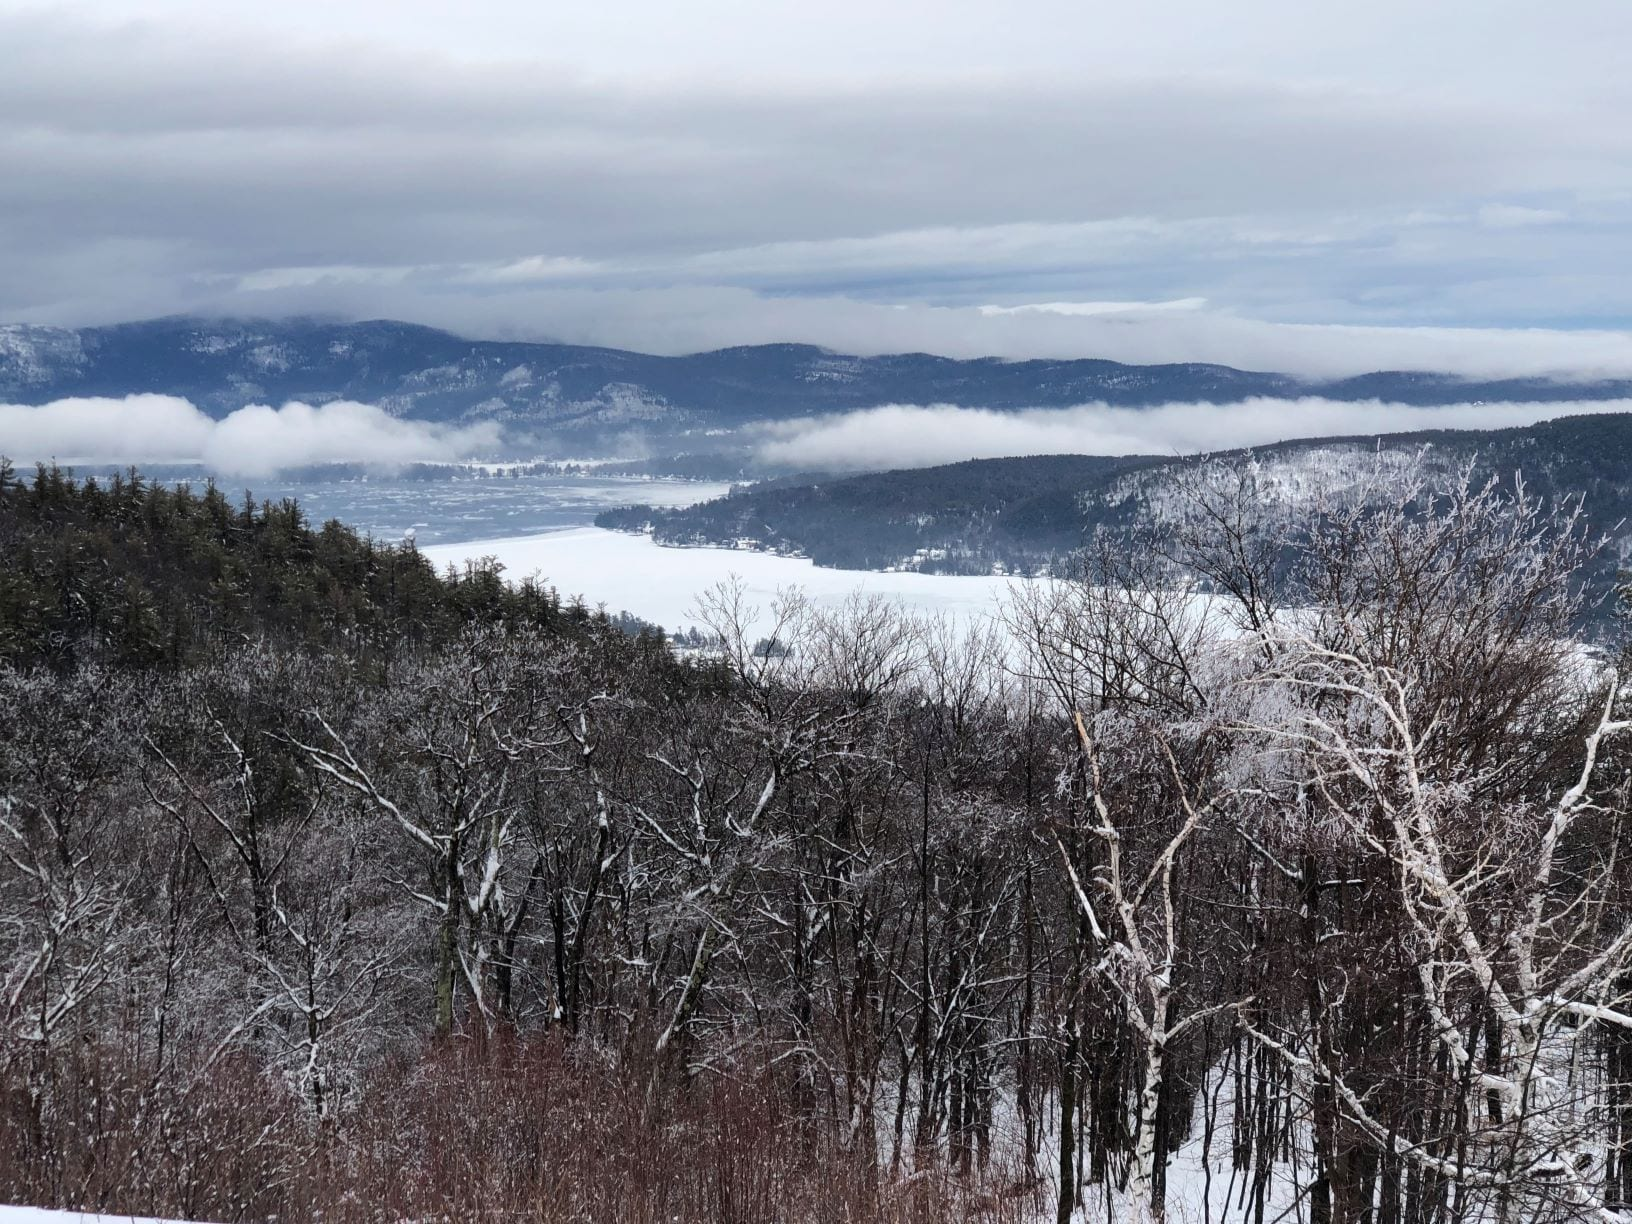 Prospect Mountain offers skiers a clear view of icy Lake George. Photo by Phil Brown